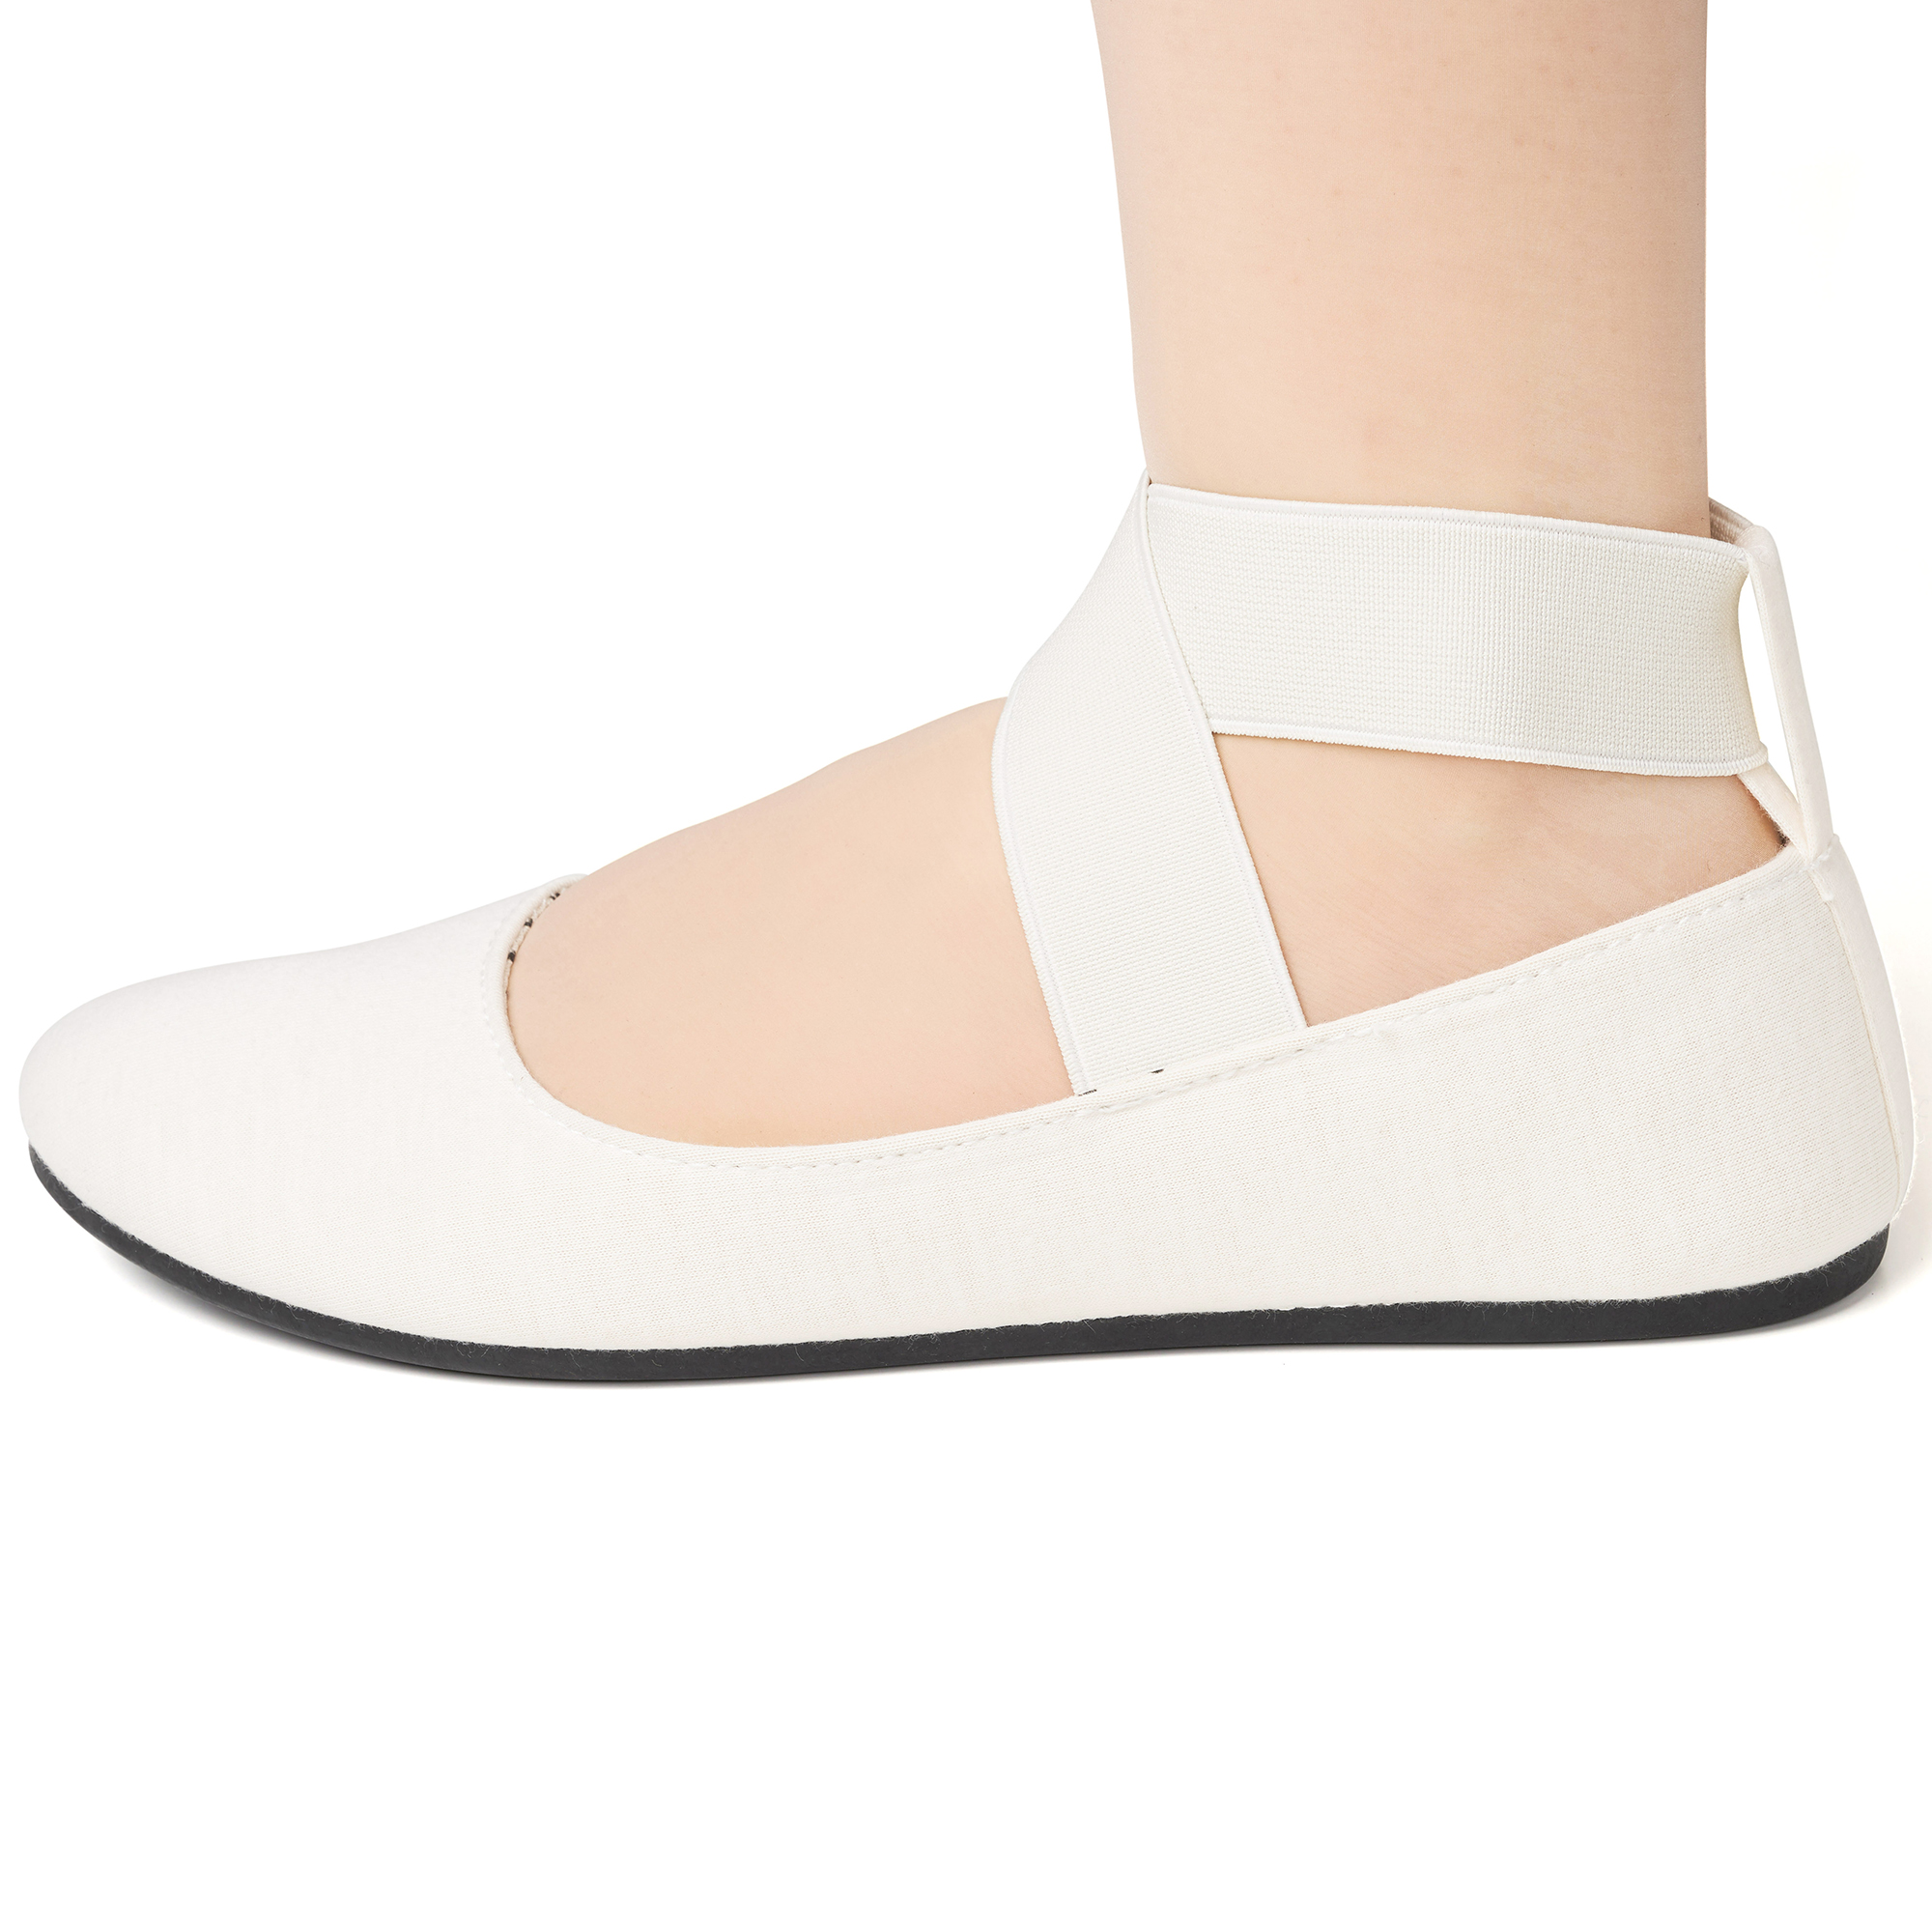 Alpine-Swiss-Peony-Womens-Ballet-Flats-Elastic-Ankle-Strap-Shoes-Slip-On-Loafers thumbnail 26